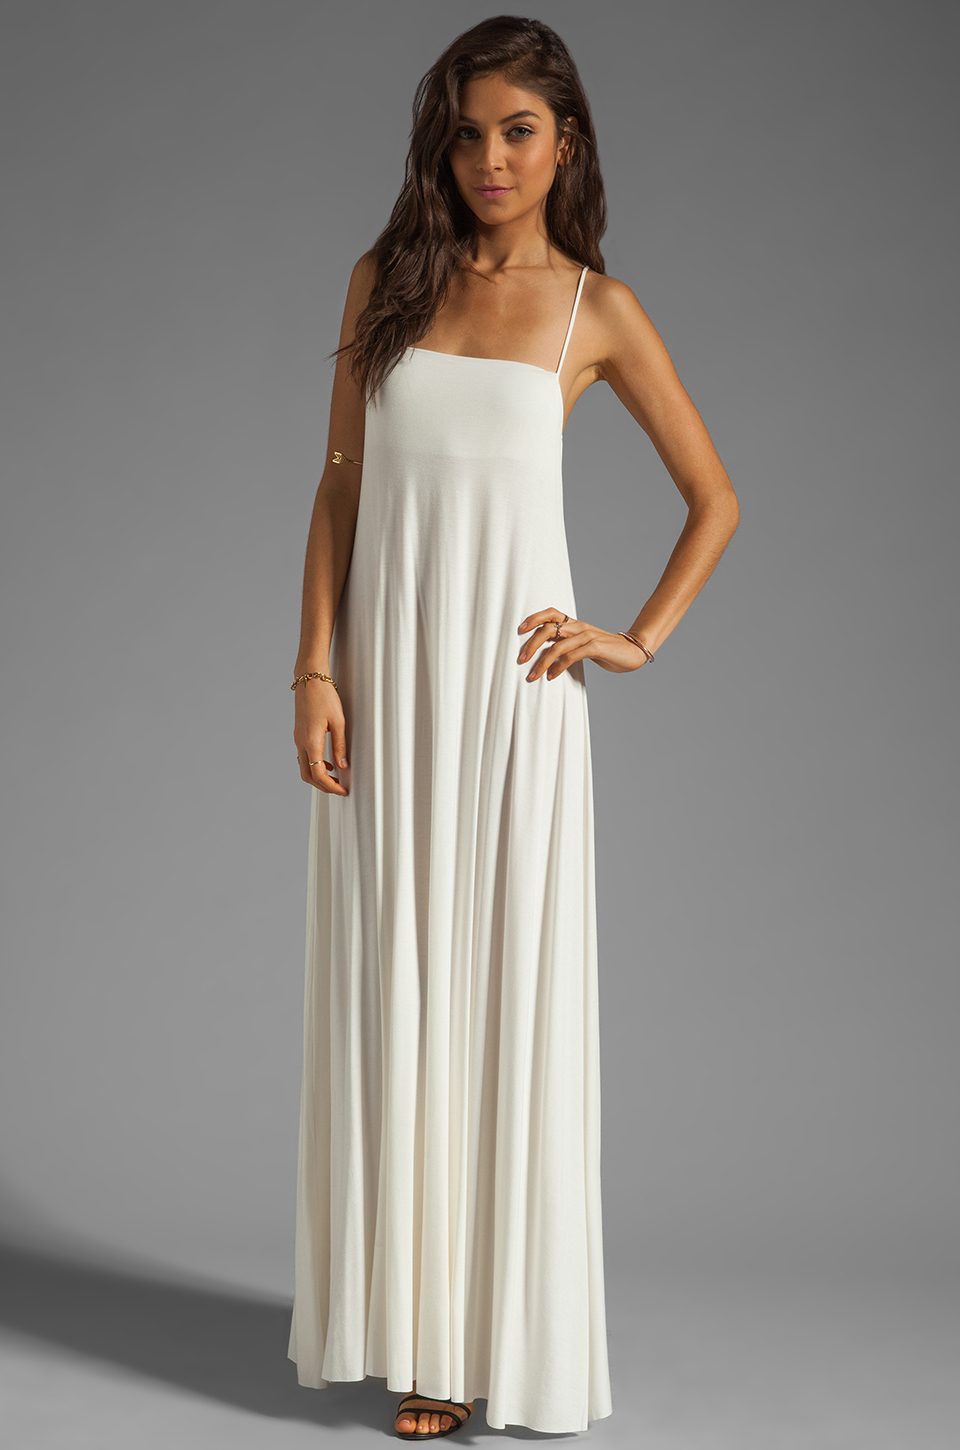 Rachel pally lyle maxi dress in white lyst gallery ombrellifo Image collections